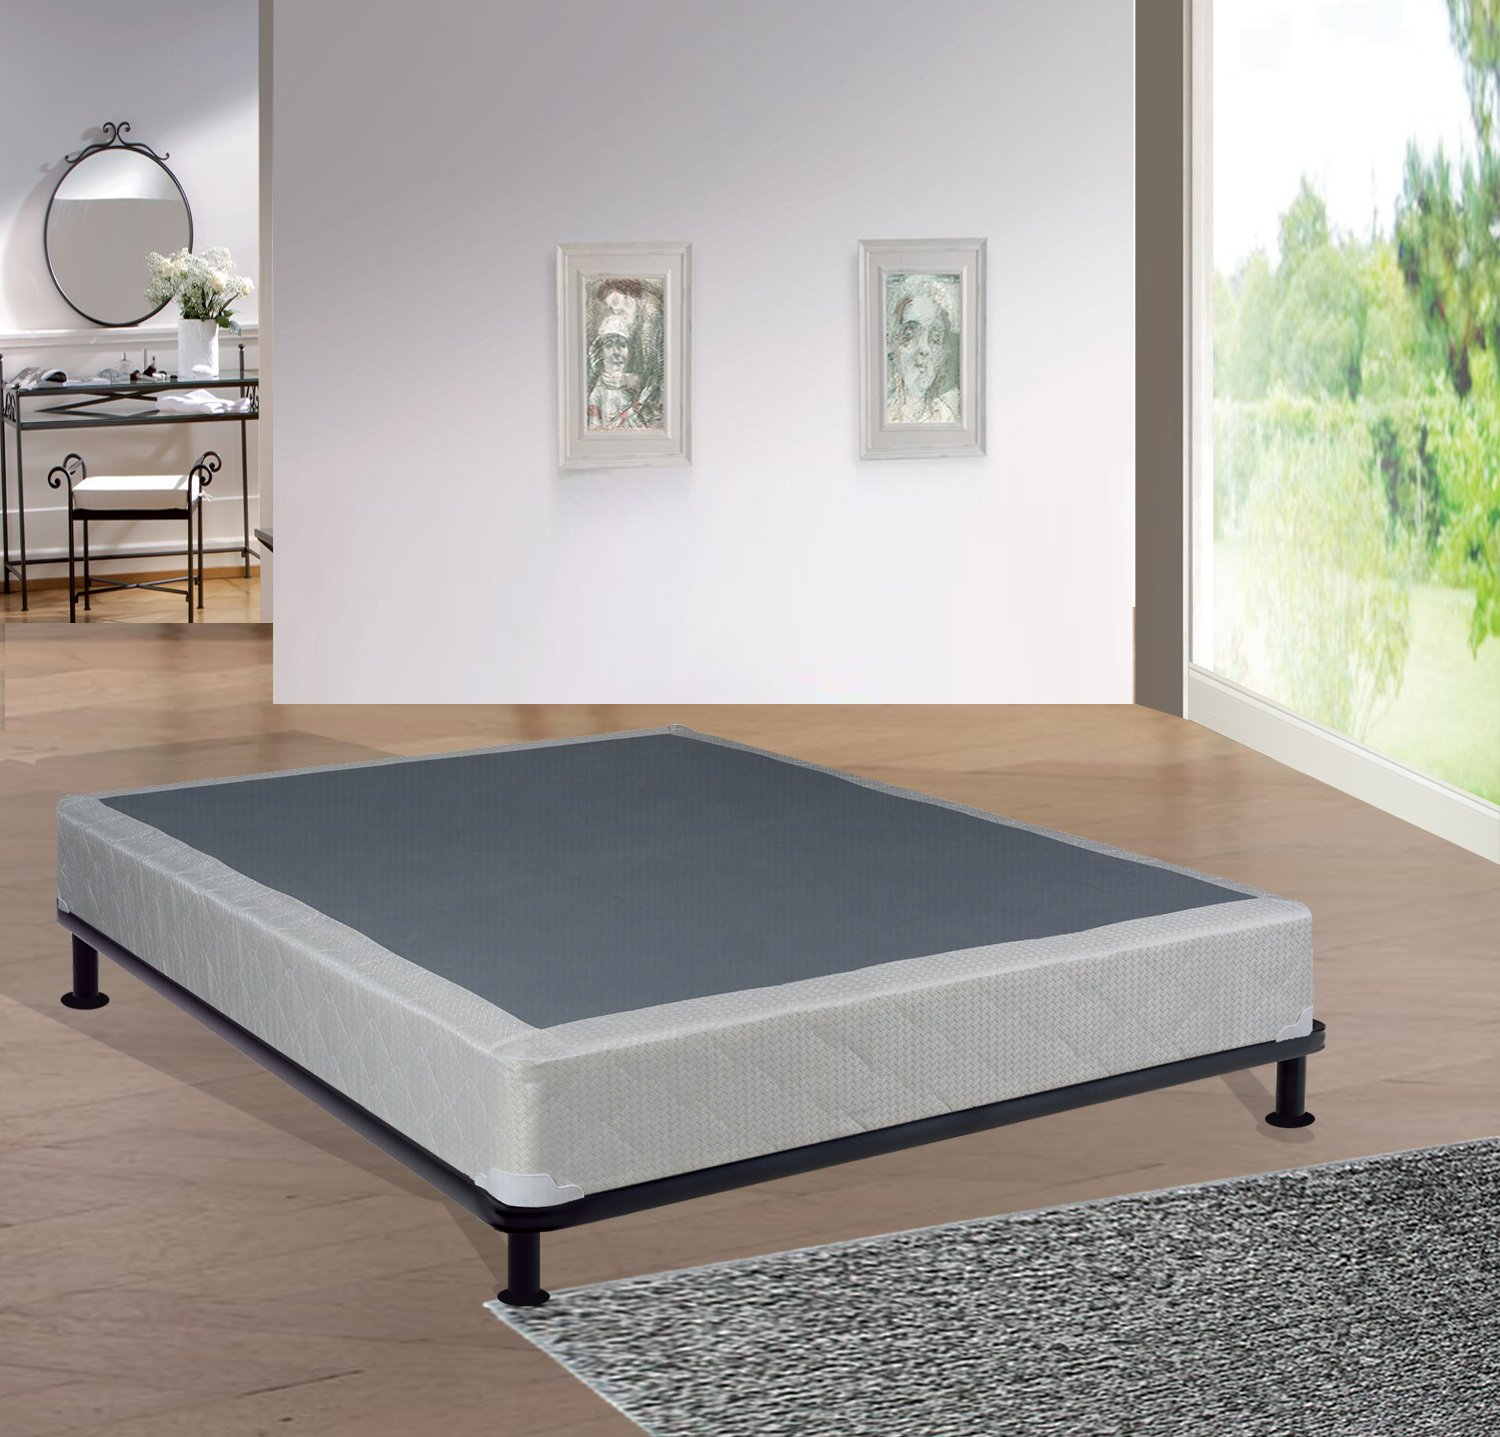 Greaton 8-Inch Fully Assembly Box Spring/Foundation For Mattress, Good For Back Queen Size White & LT Brown